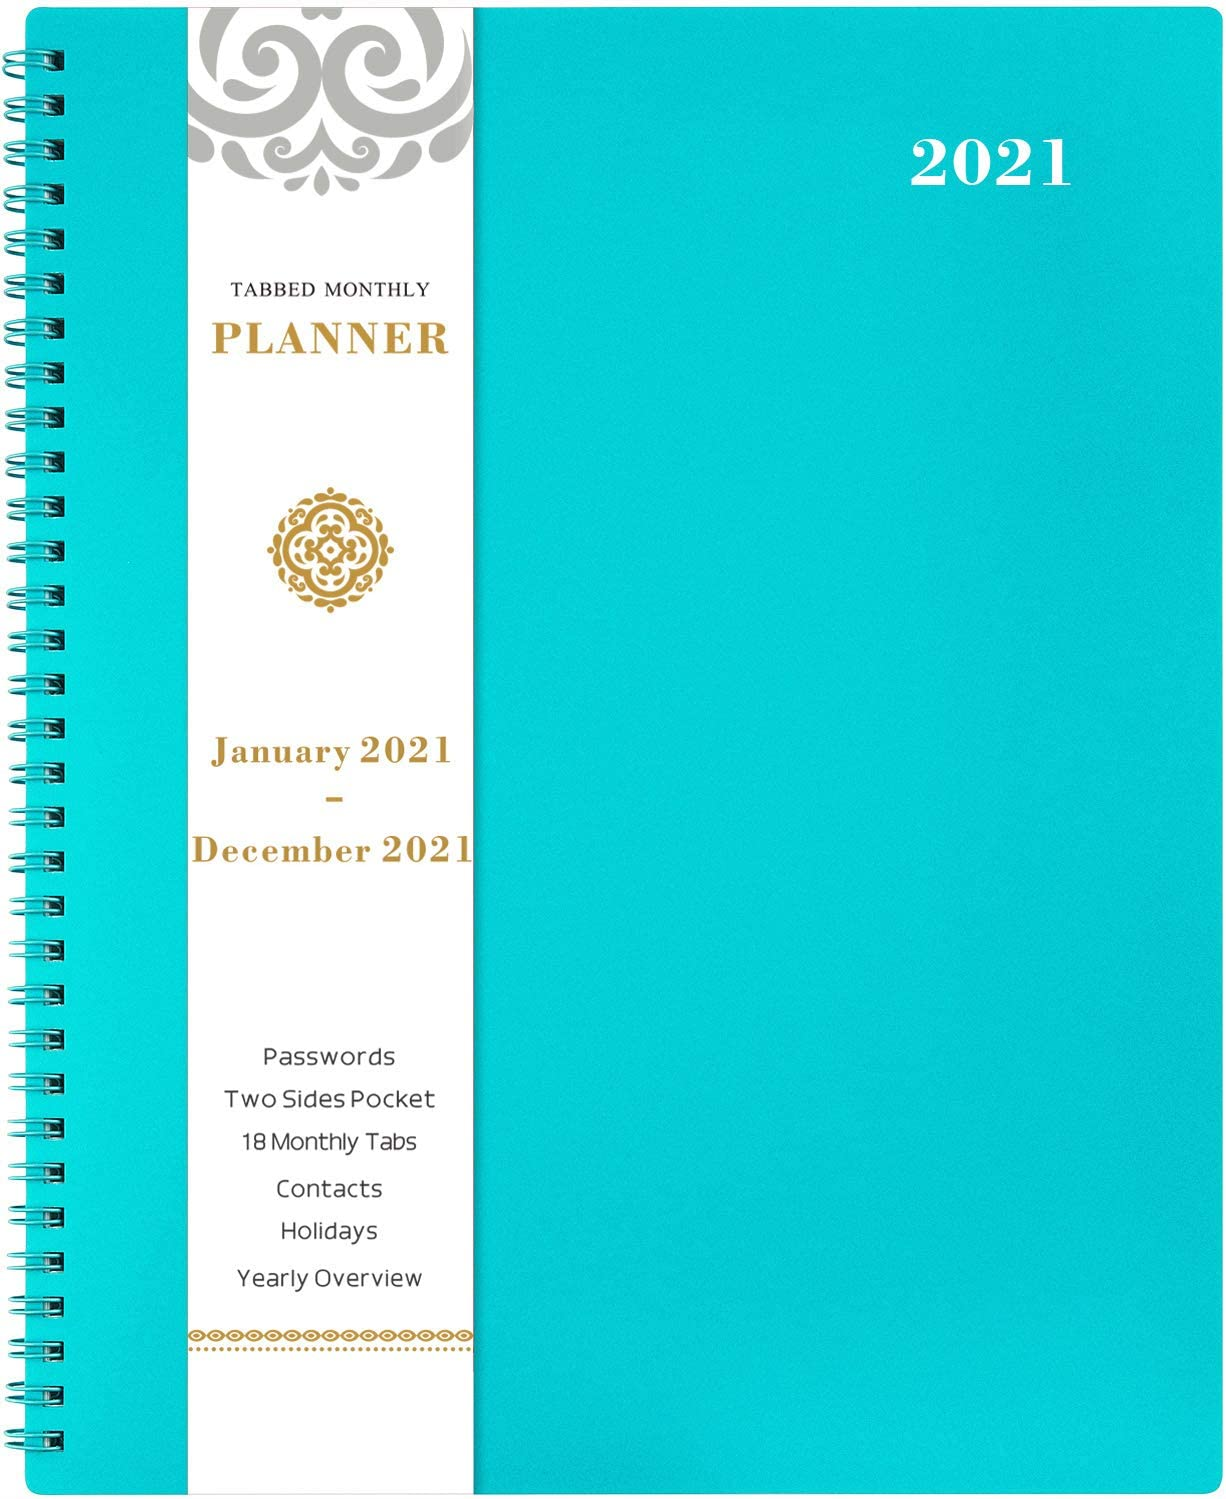 """2021 Monthly Planner - 12-Month Planner with Tabs, Pocket, Label, Contacts and Passwords, 8.5"""" x 11"""", Jan. - Dec. 2021, Twin-Wire Binding - Teal by Artfan : Office Products"""